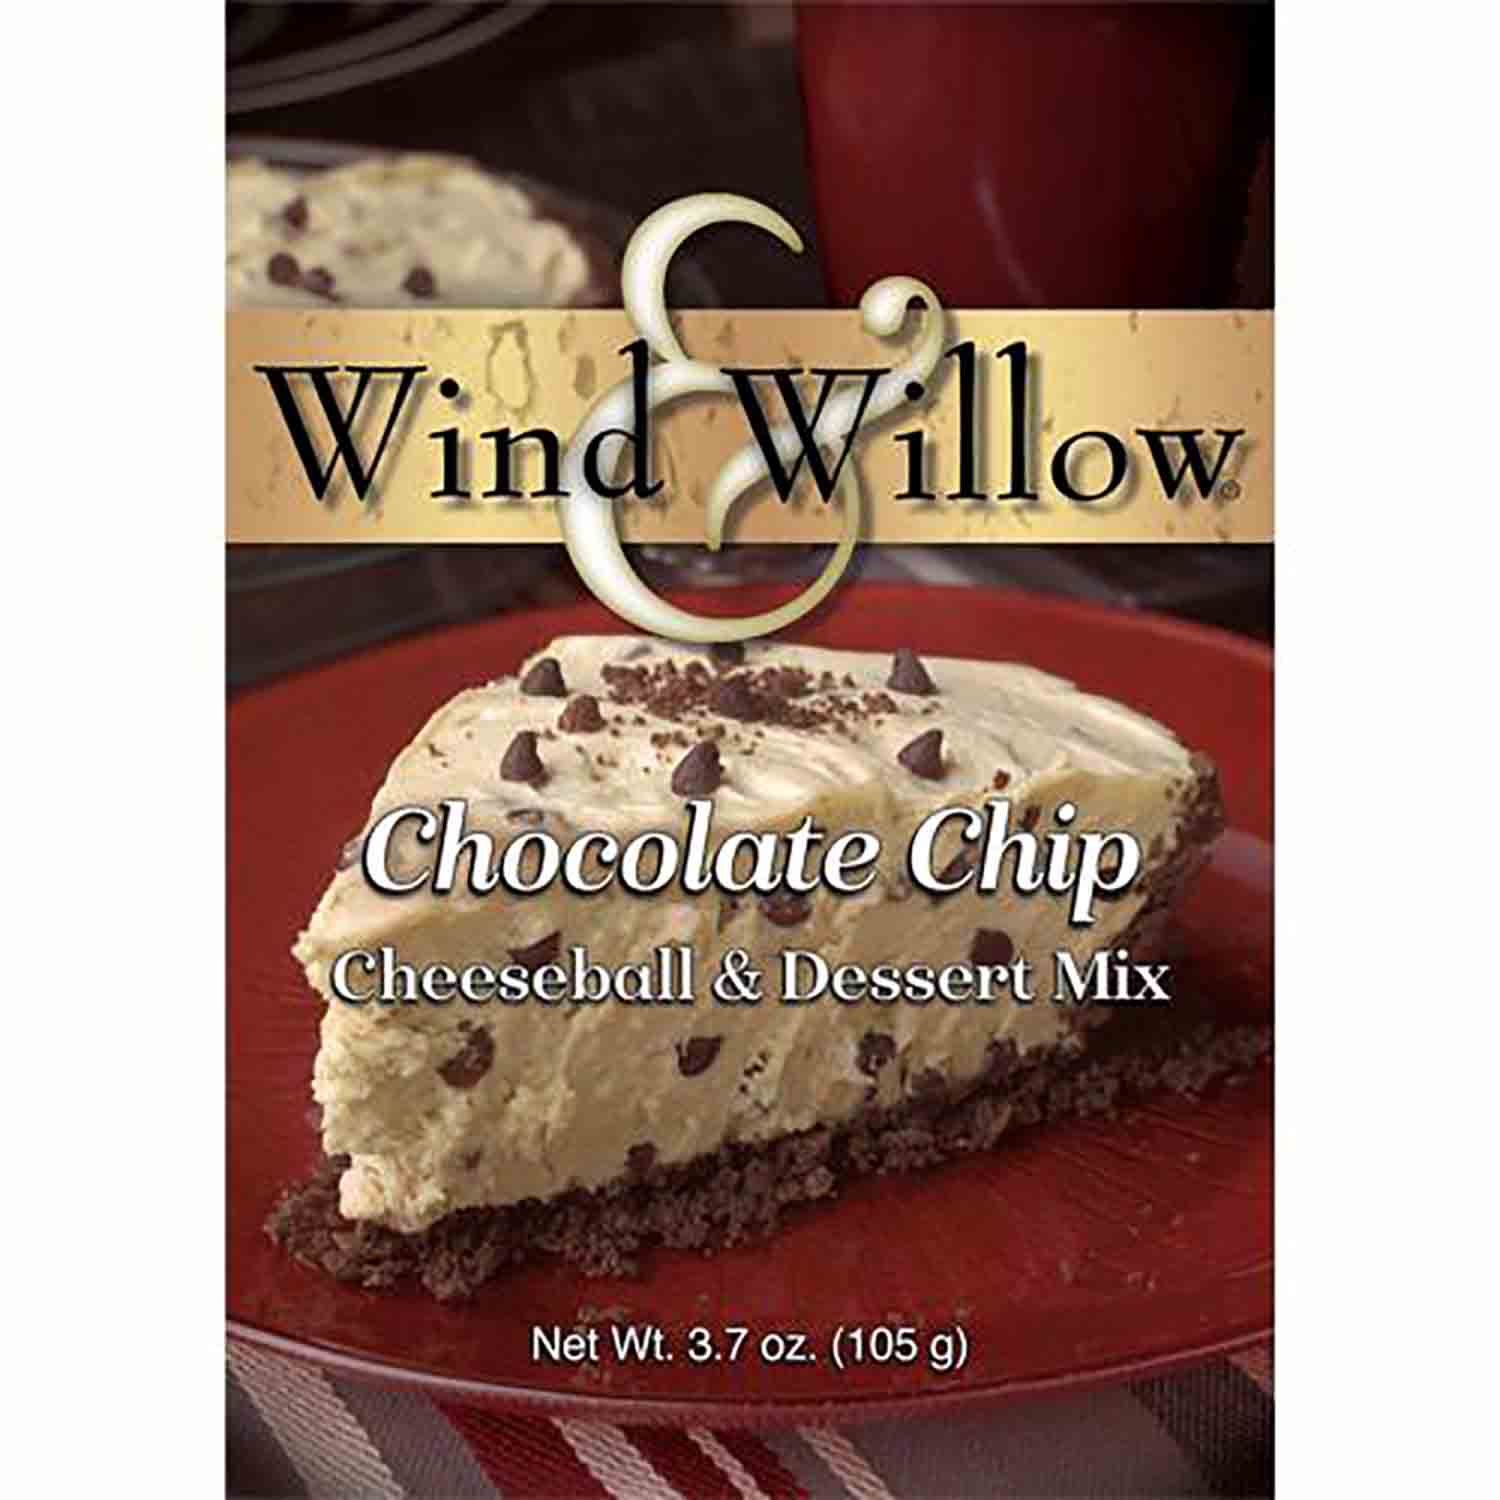 Chocolate Chip Wind & Willow Cheeseball Mix